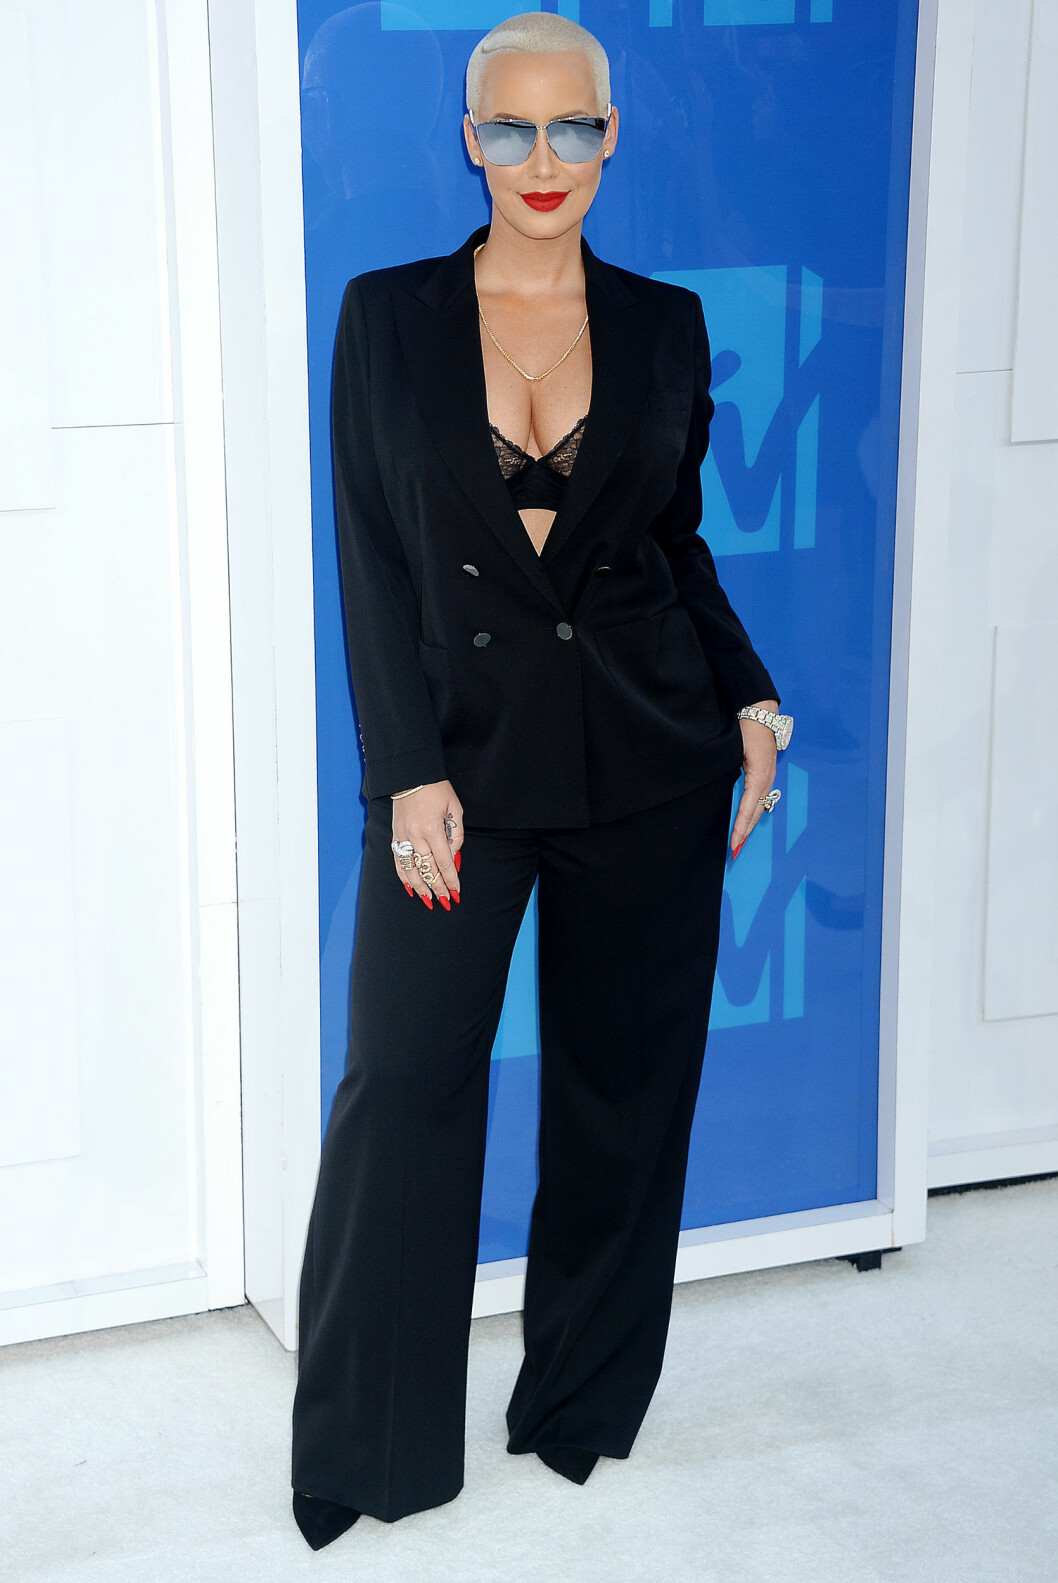 Pictured: Amber Rose Mandatory Credit © Gilbert Flores /Broadimage 2016 MTV Video Music Awards  8/28/16, New York, New York, United States of America Reference: 082816_GFLA_BDG_M_025  Broadimage Newswire Los Angeles 1+  (310) 301-1027 New York      1+  (646) 827-9134 sales@broadimage.com http://www.broadimage.com    Foto: Broadimage